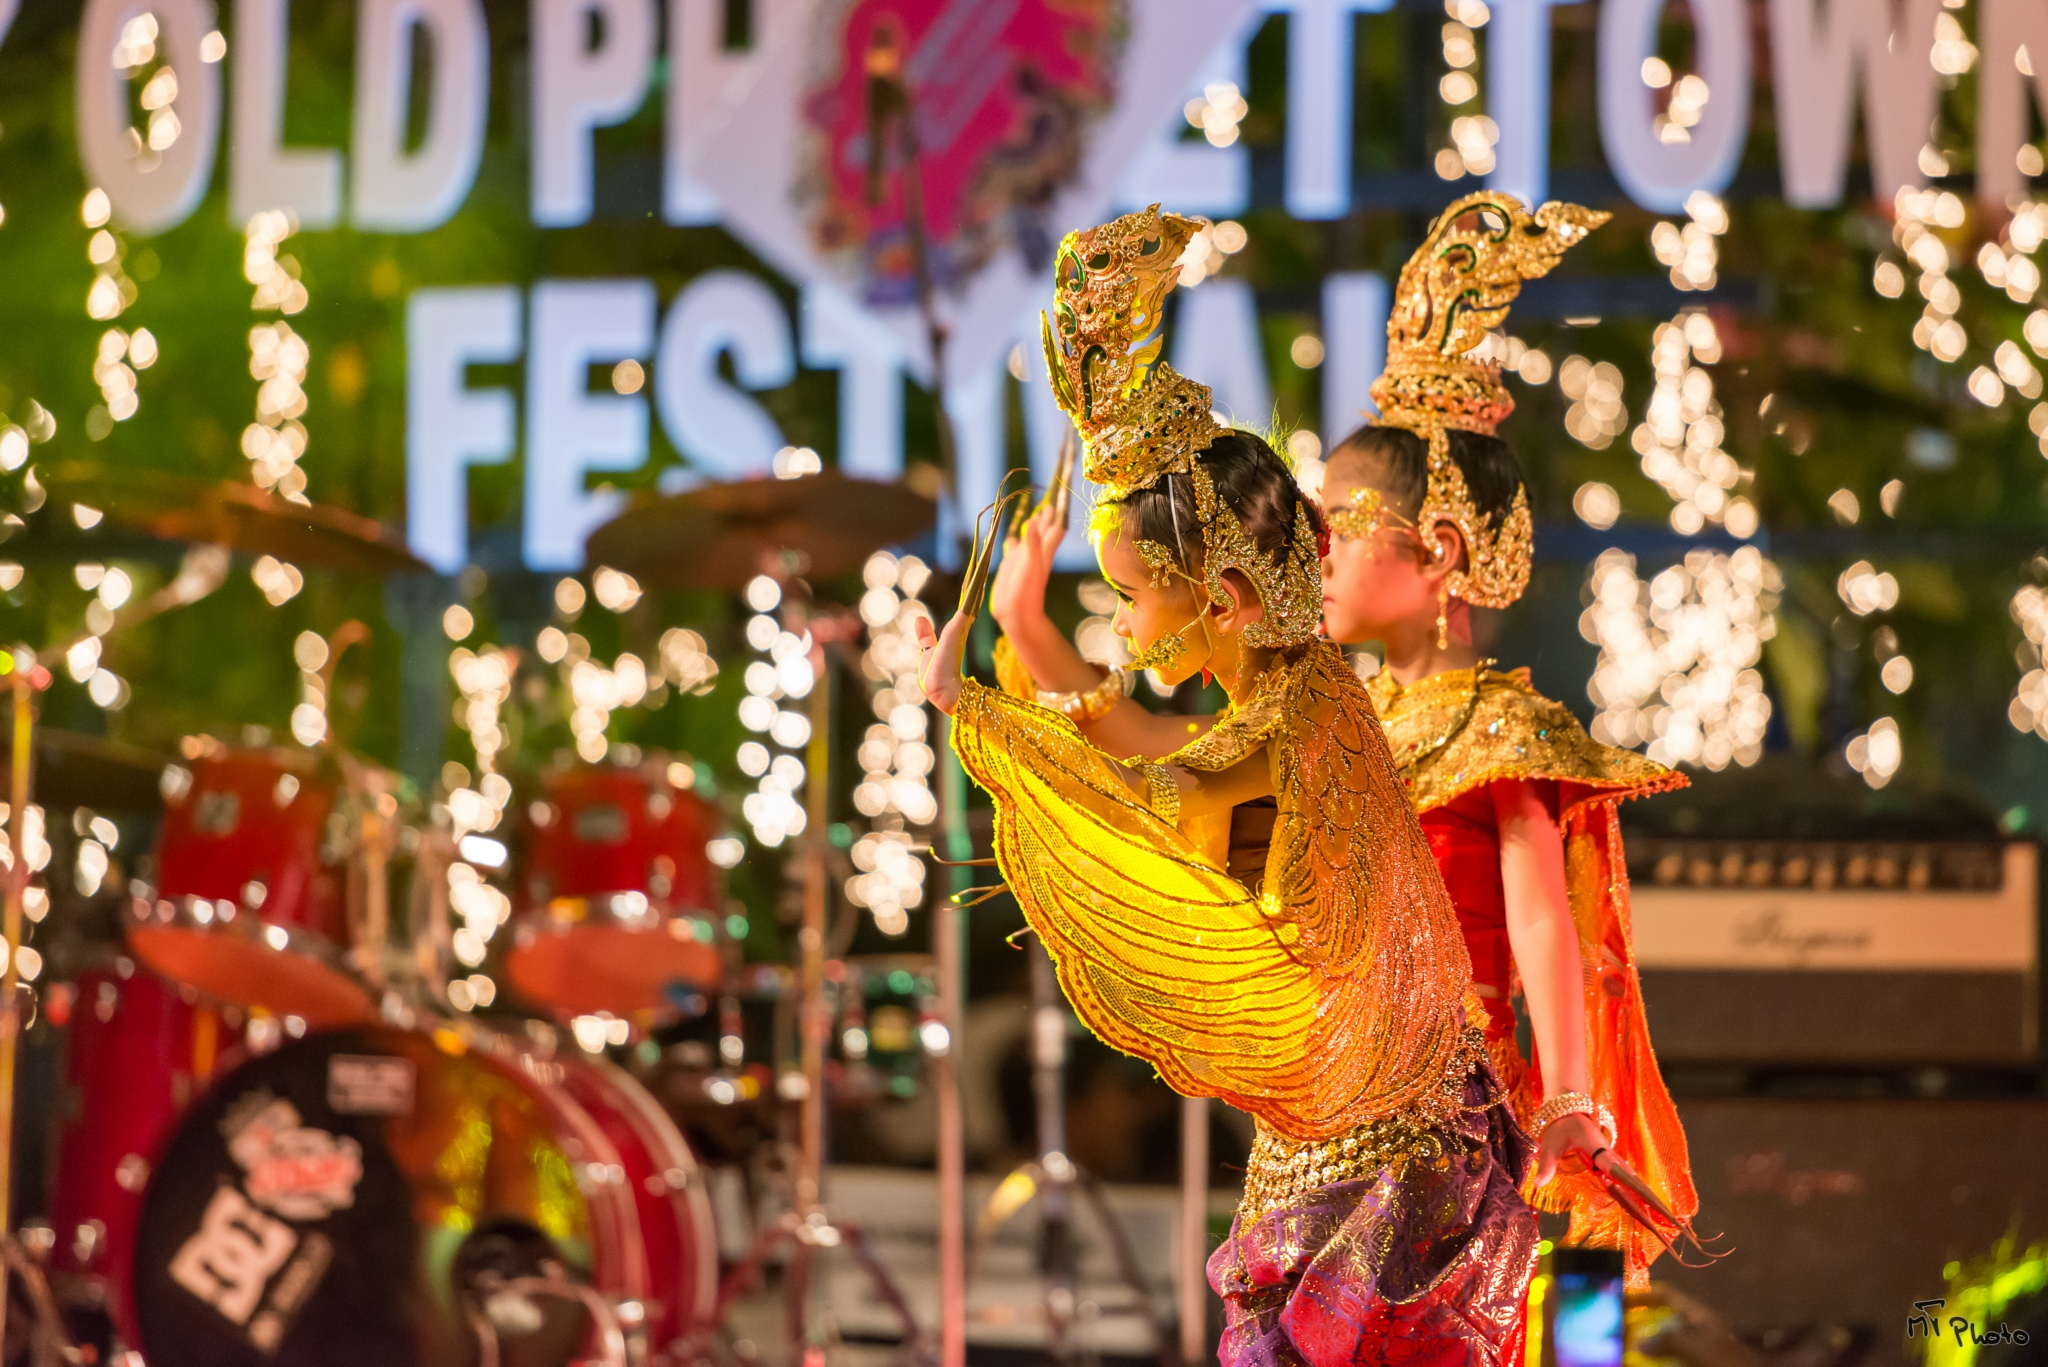 17th Old Phuket Town Festival by Marco Tinner